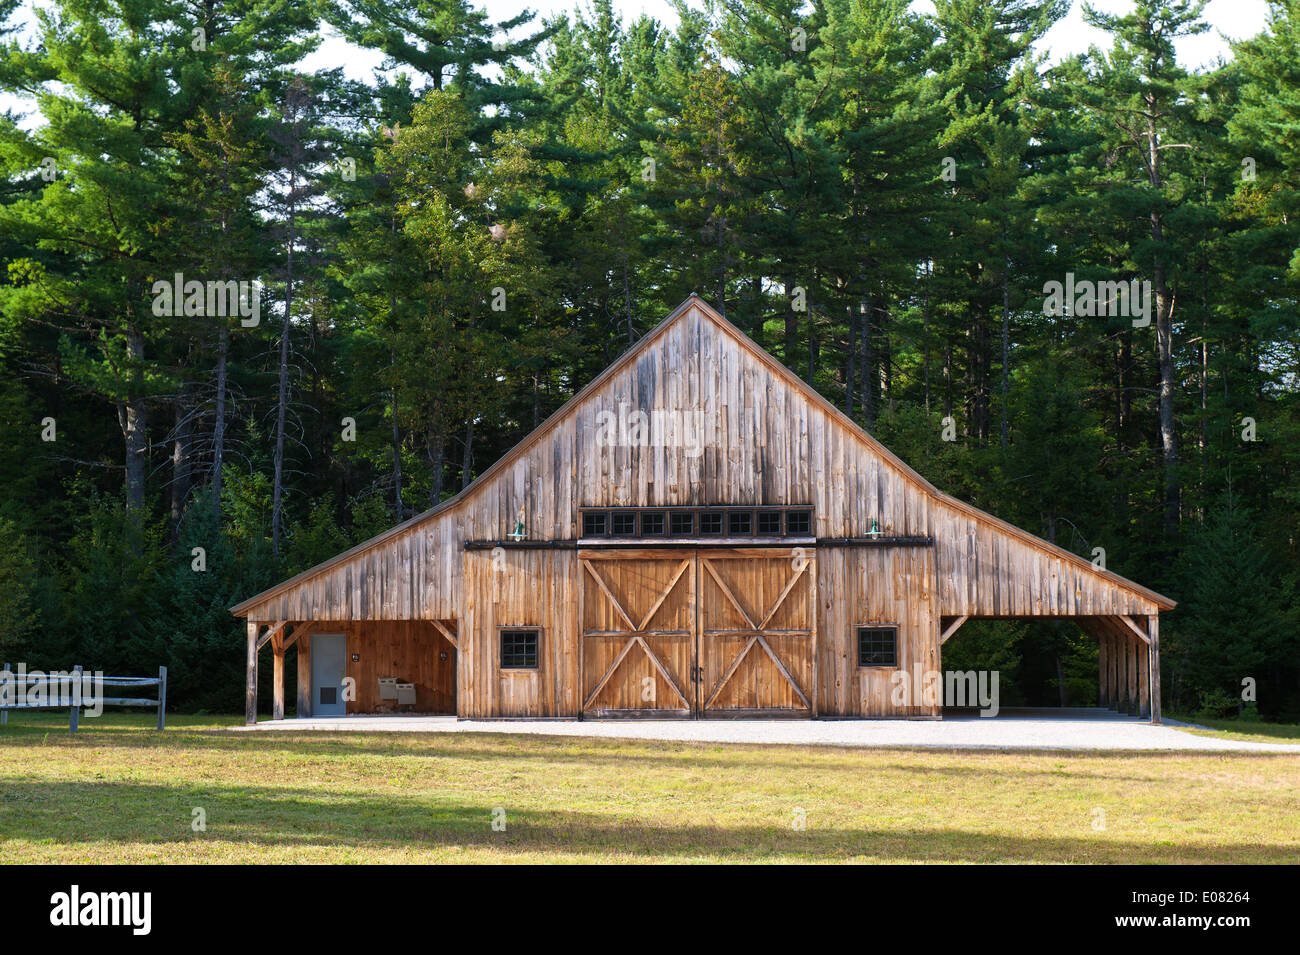 Post and beam barn at the Russell-Colbath Homestead, New Hampshire, USA. - Stock Image